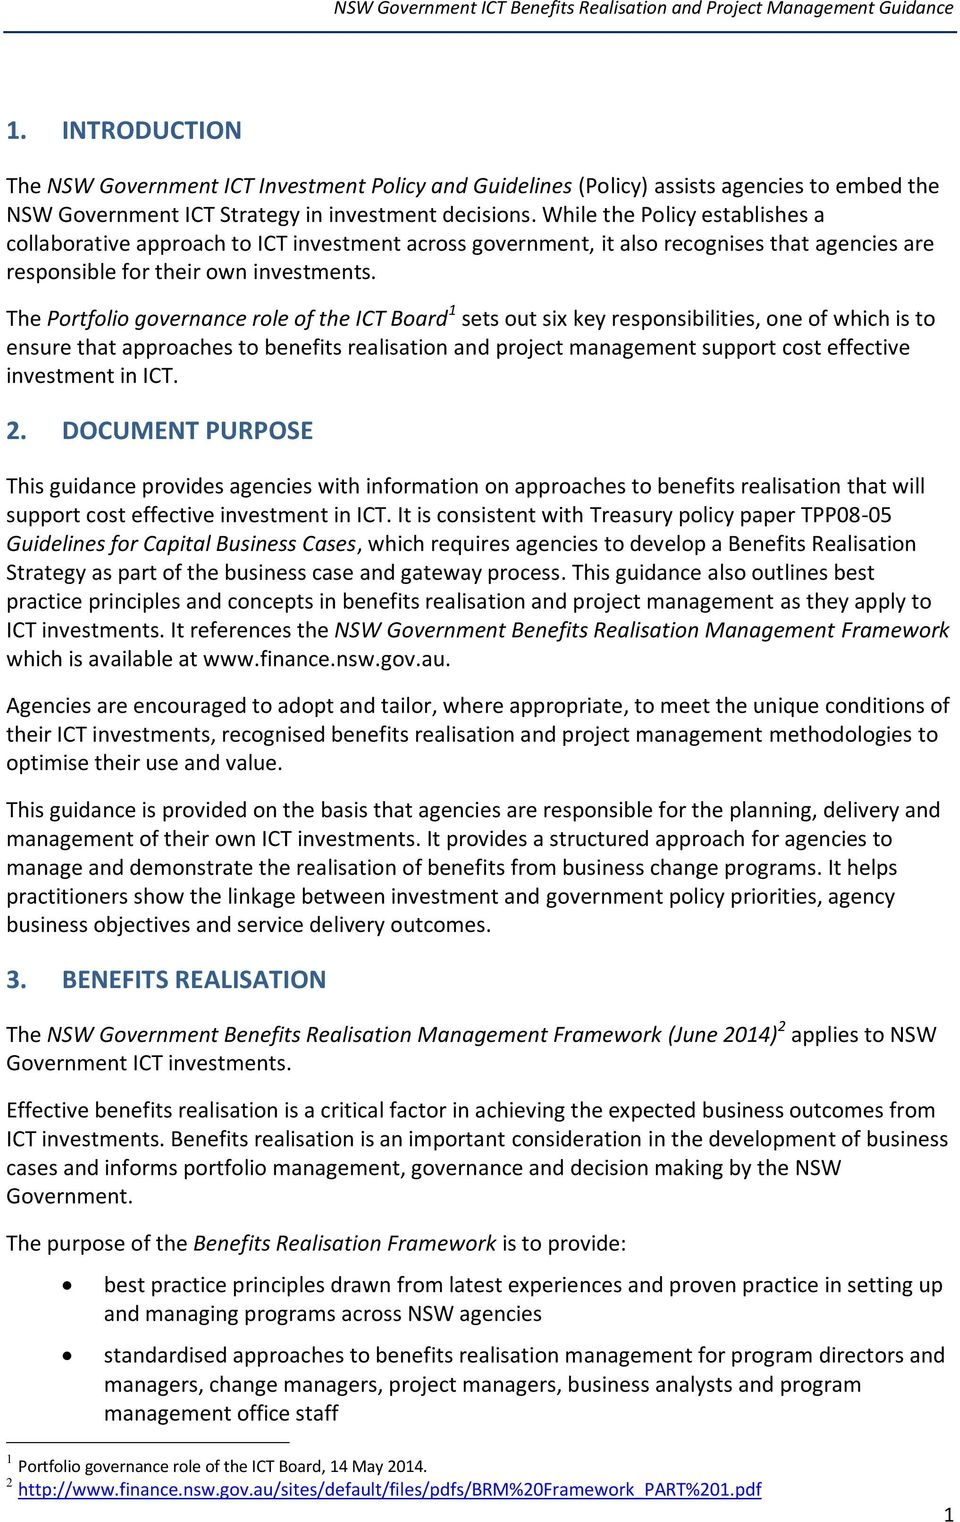 The Portfolio governance role of the ICT Board 1 sets out six key responsibilities, one of which is to ensure that approaches to benefits realisation and project management support cost effective